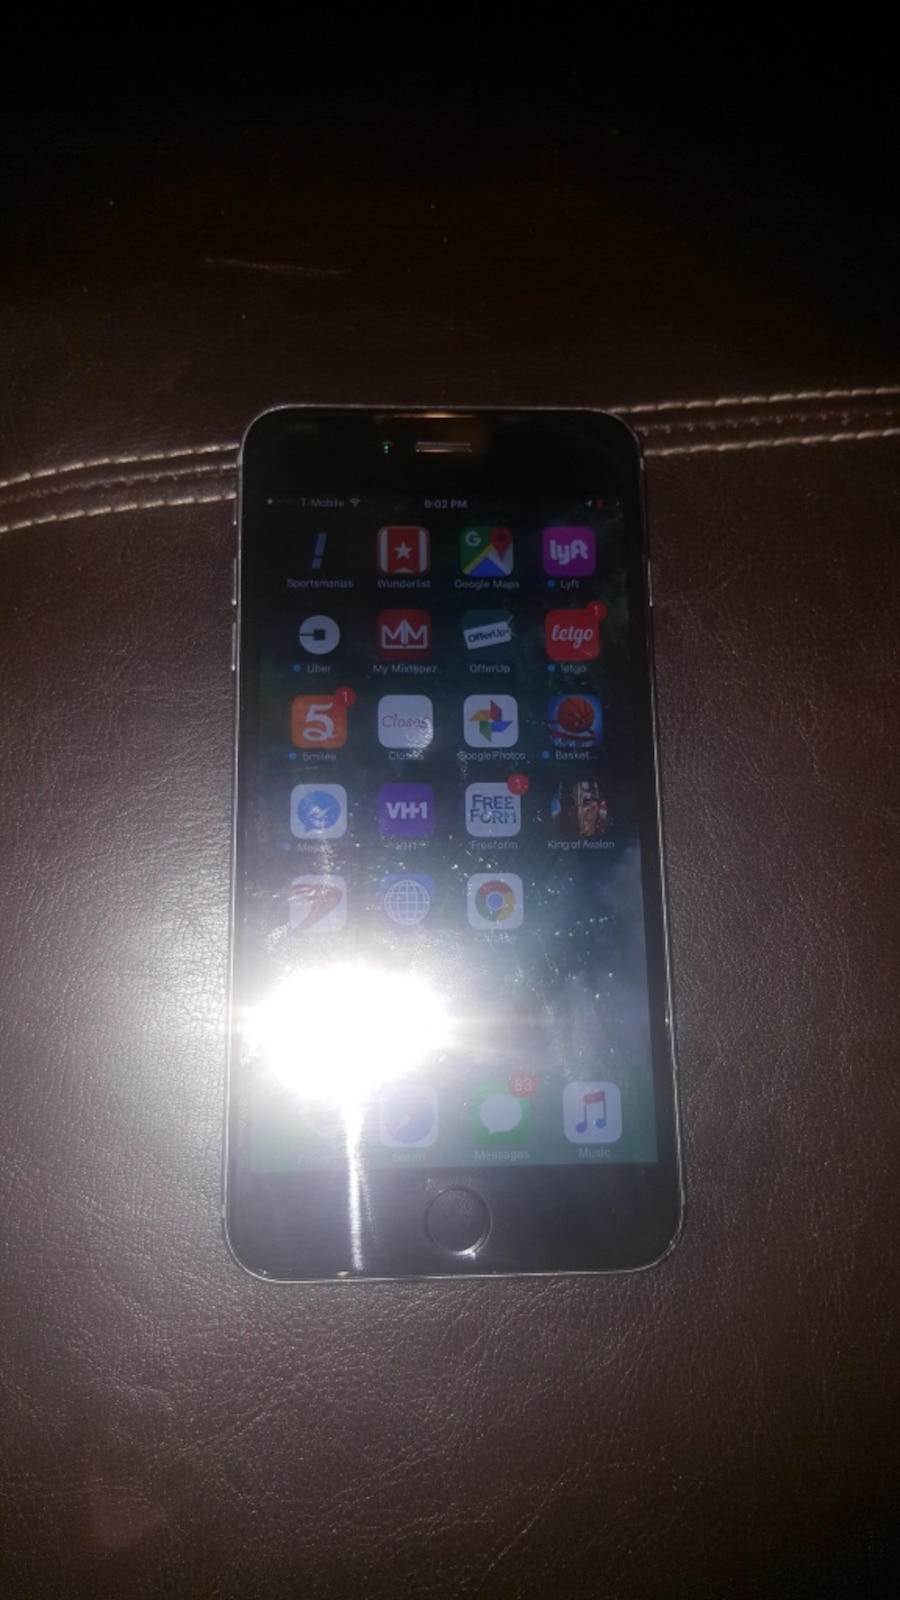 t mobile iphone 4 used t mobile iphone 6 plus unlocked in lawrenceville 16234